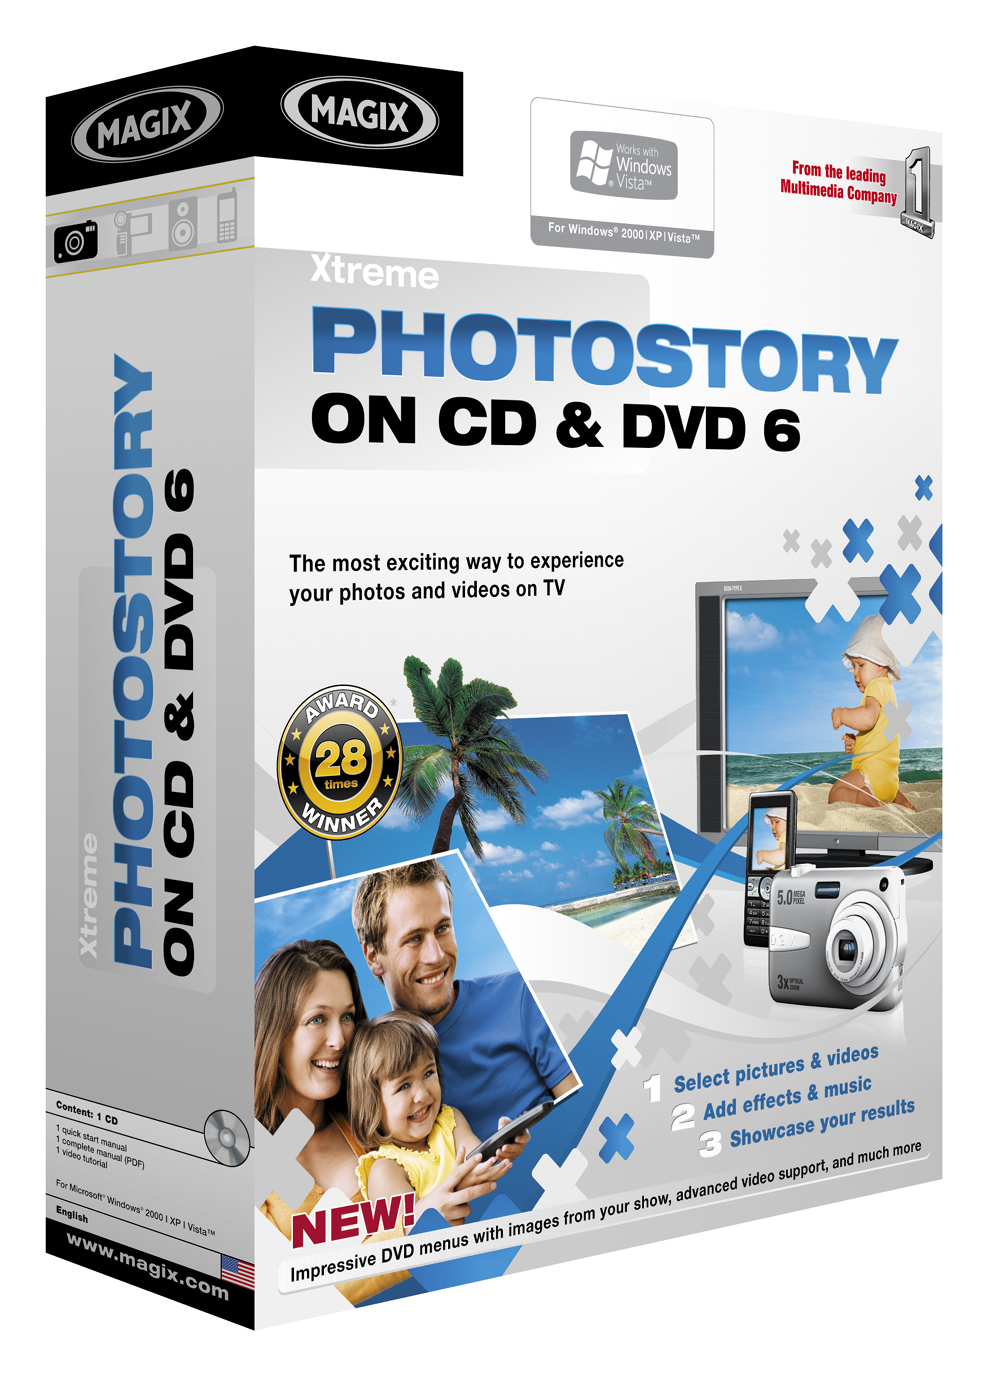 MAGIX Xtreme PhotoStory on CD & DVD